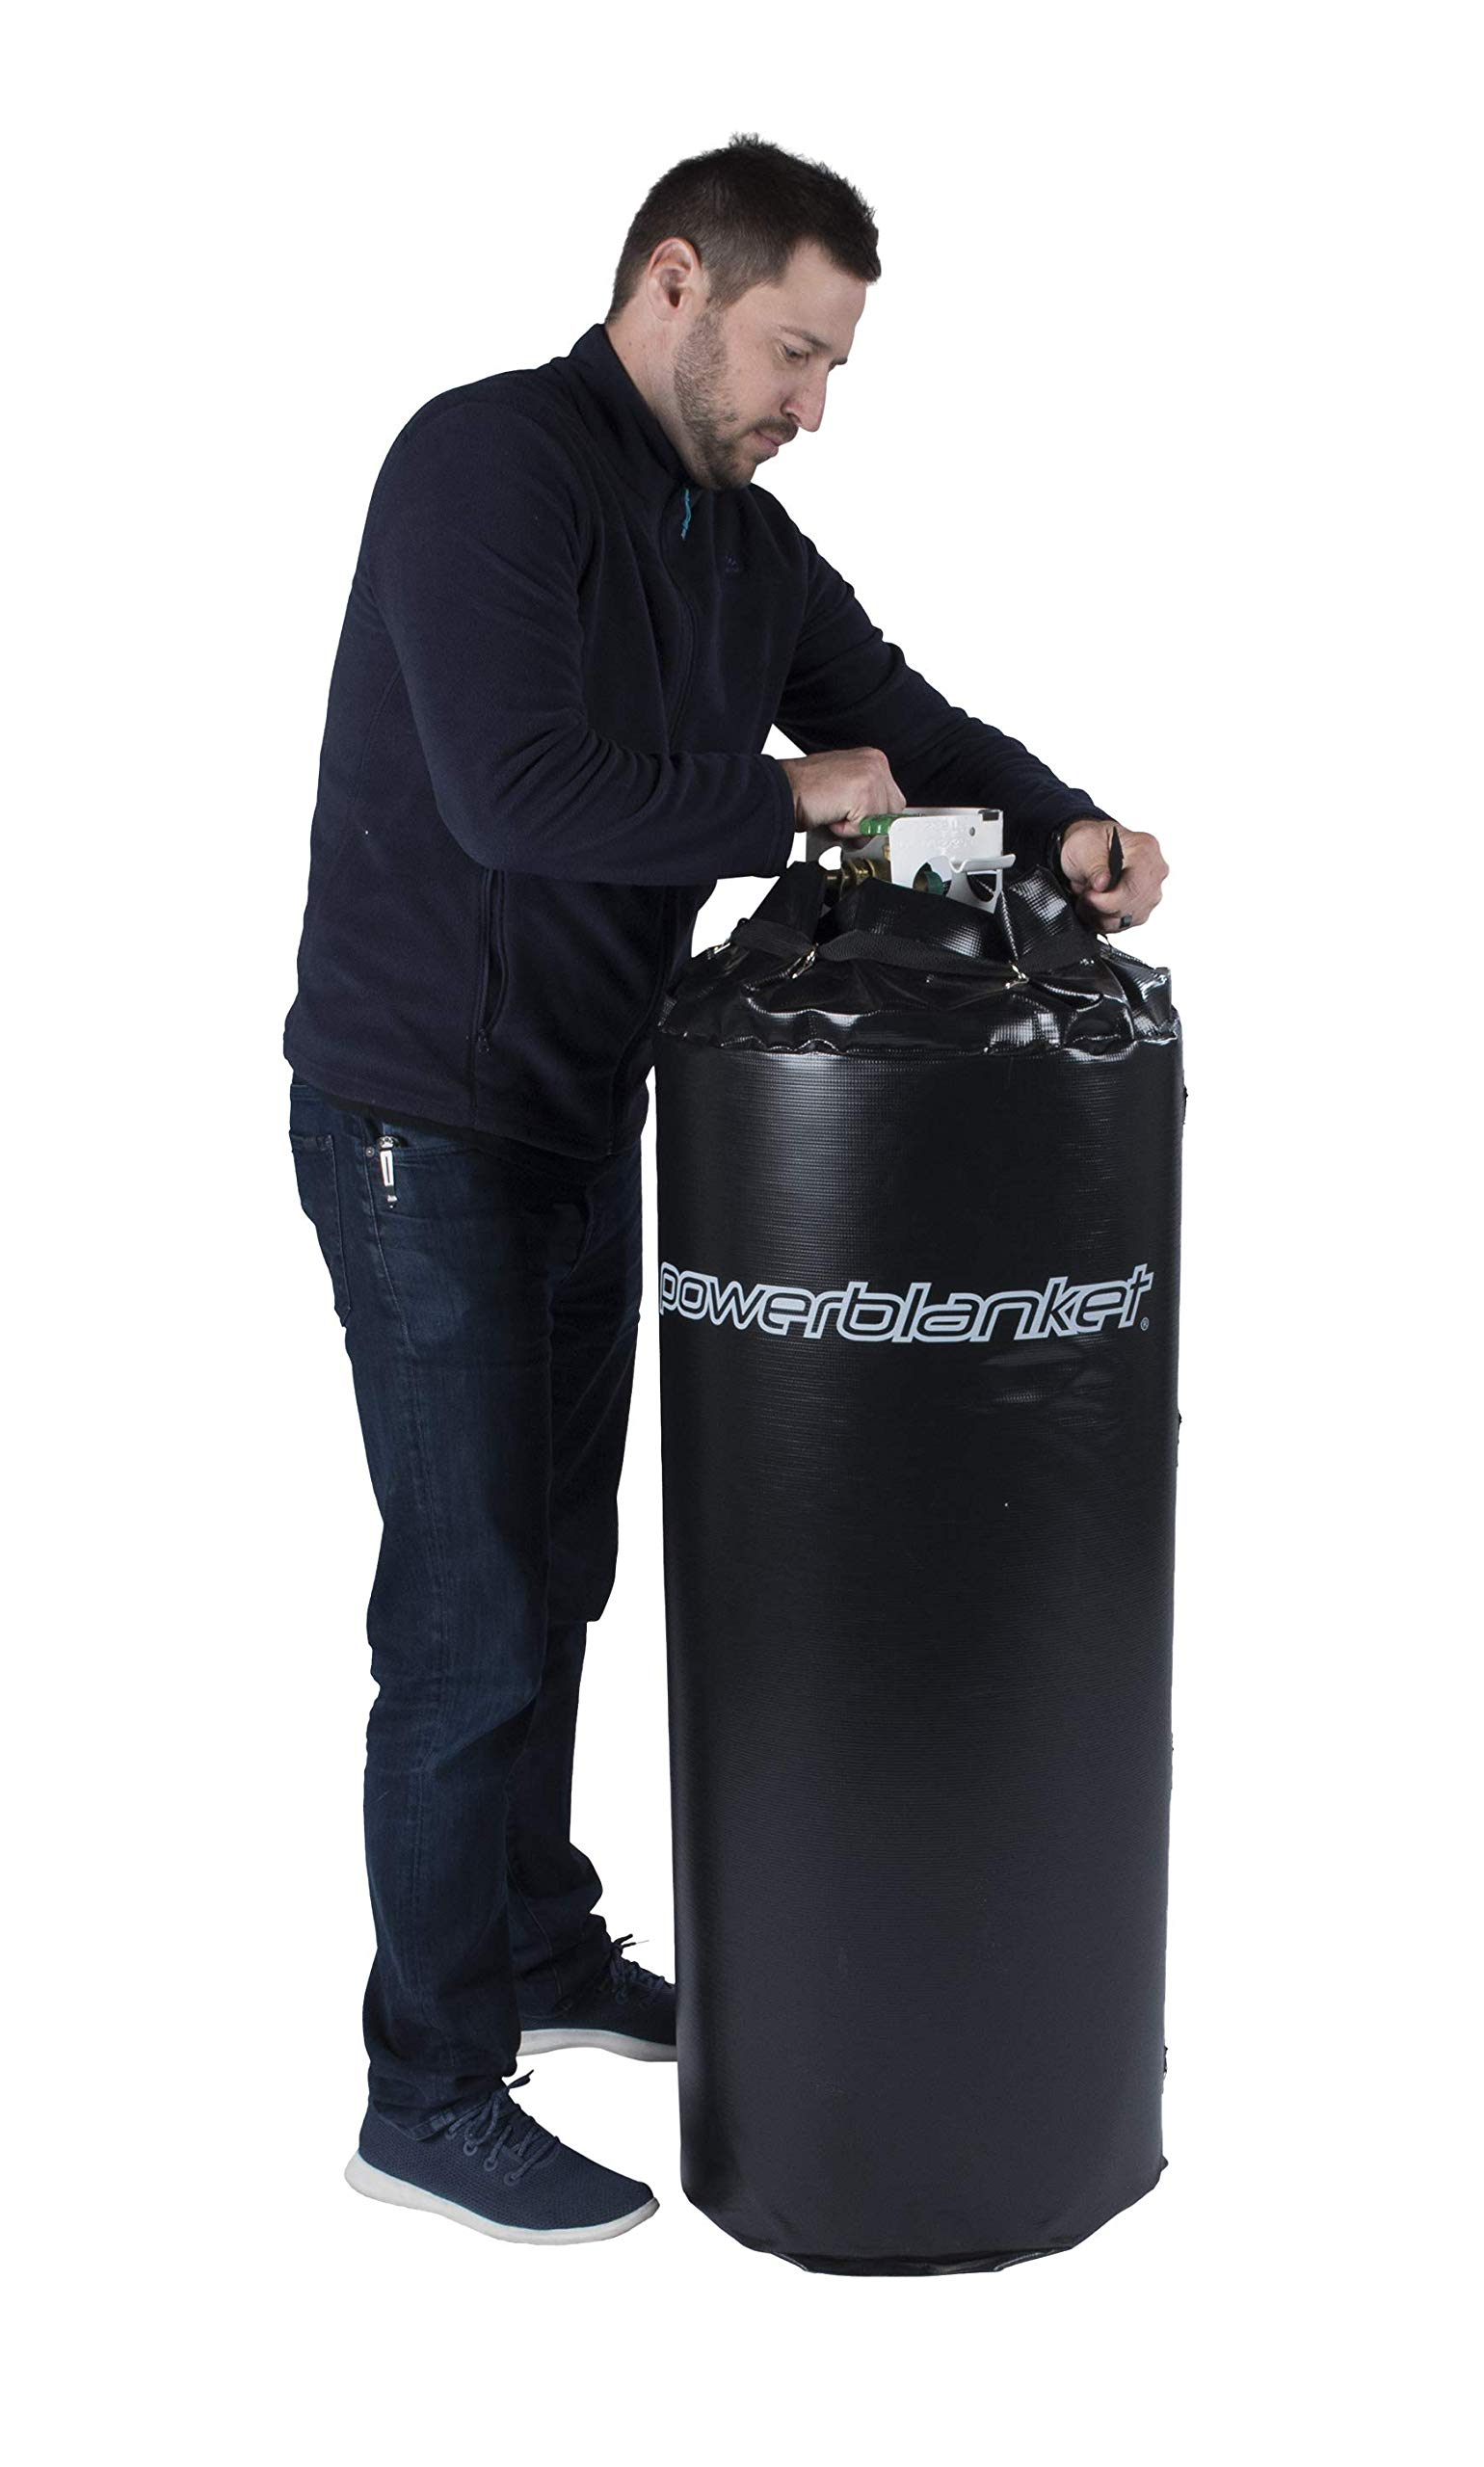 Powerblanket FCW60 Foam Cylinder Heater Designed to Fit 60 Gallon Tank, 24'' D x 34'' H, 90°F (Previous Part # FCW2428C)